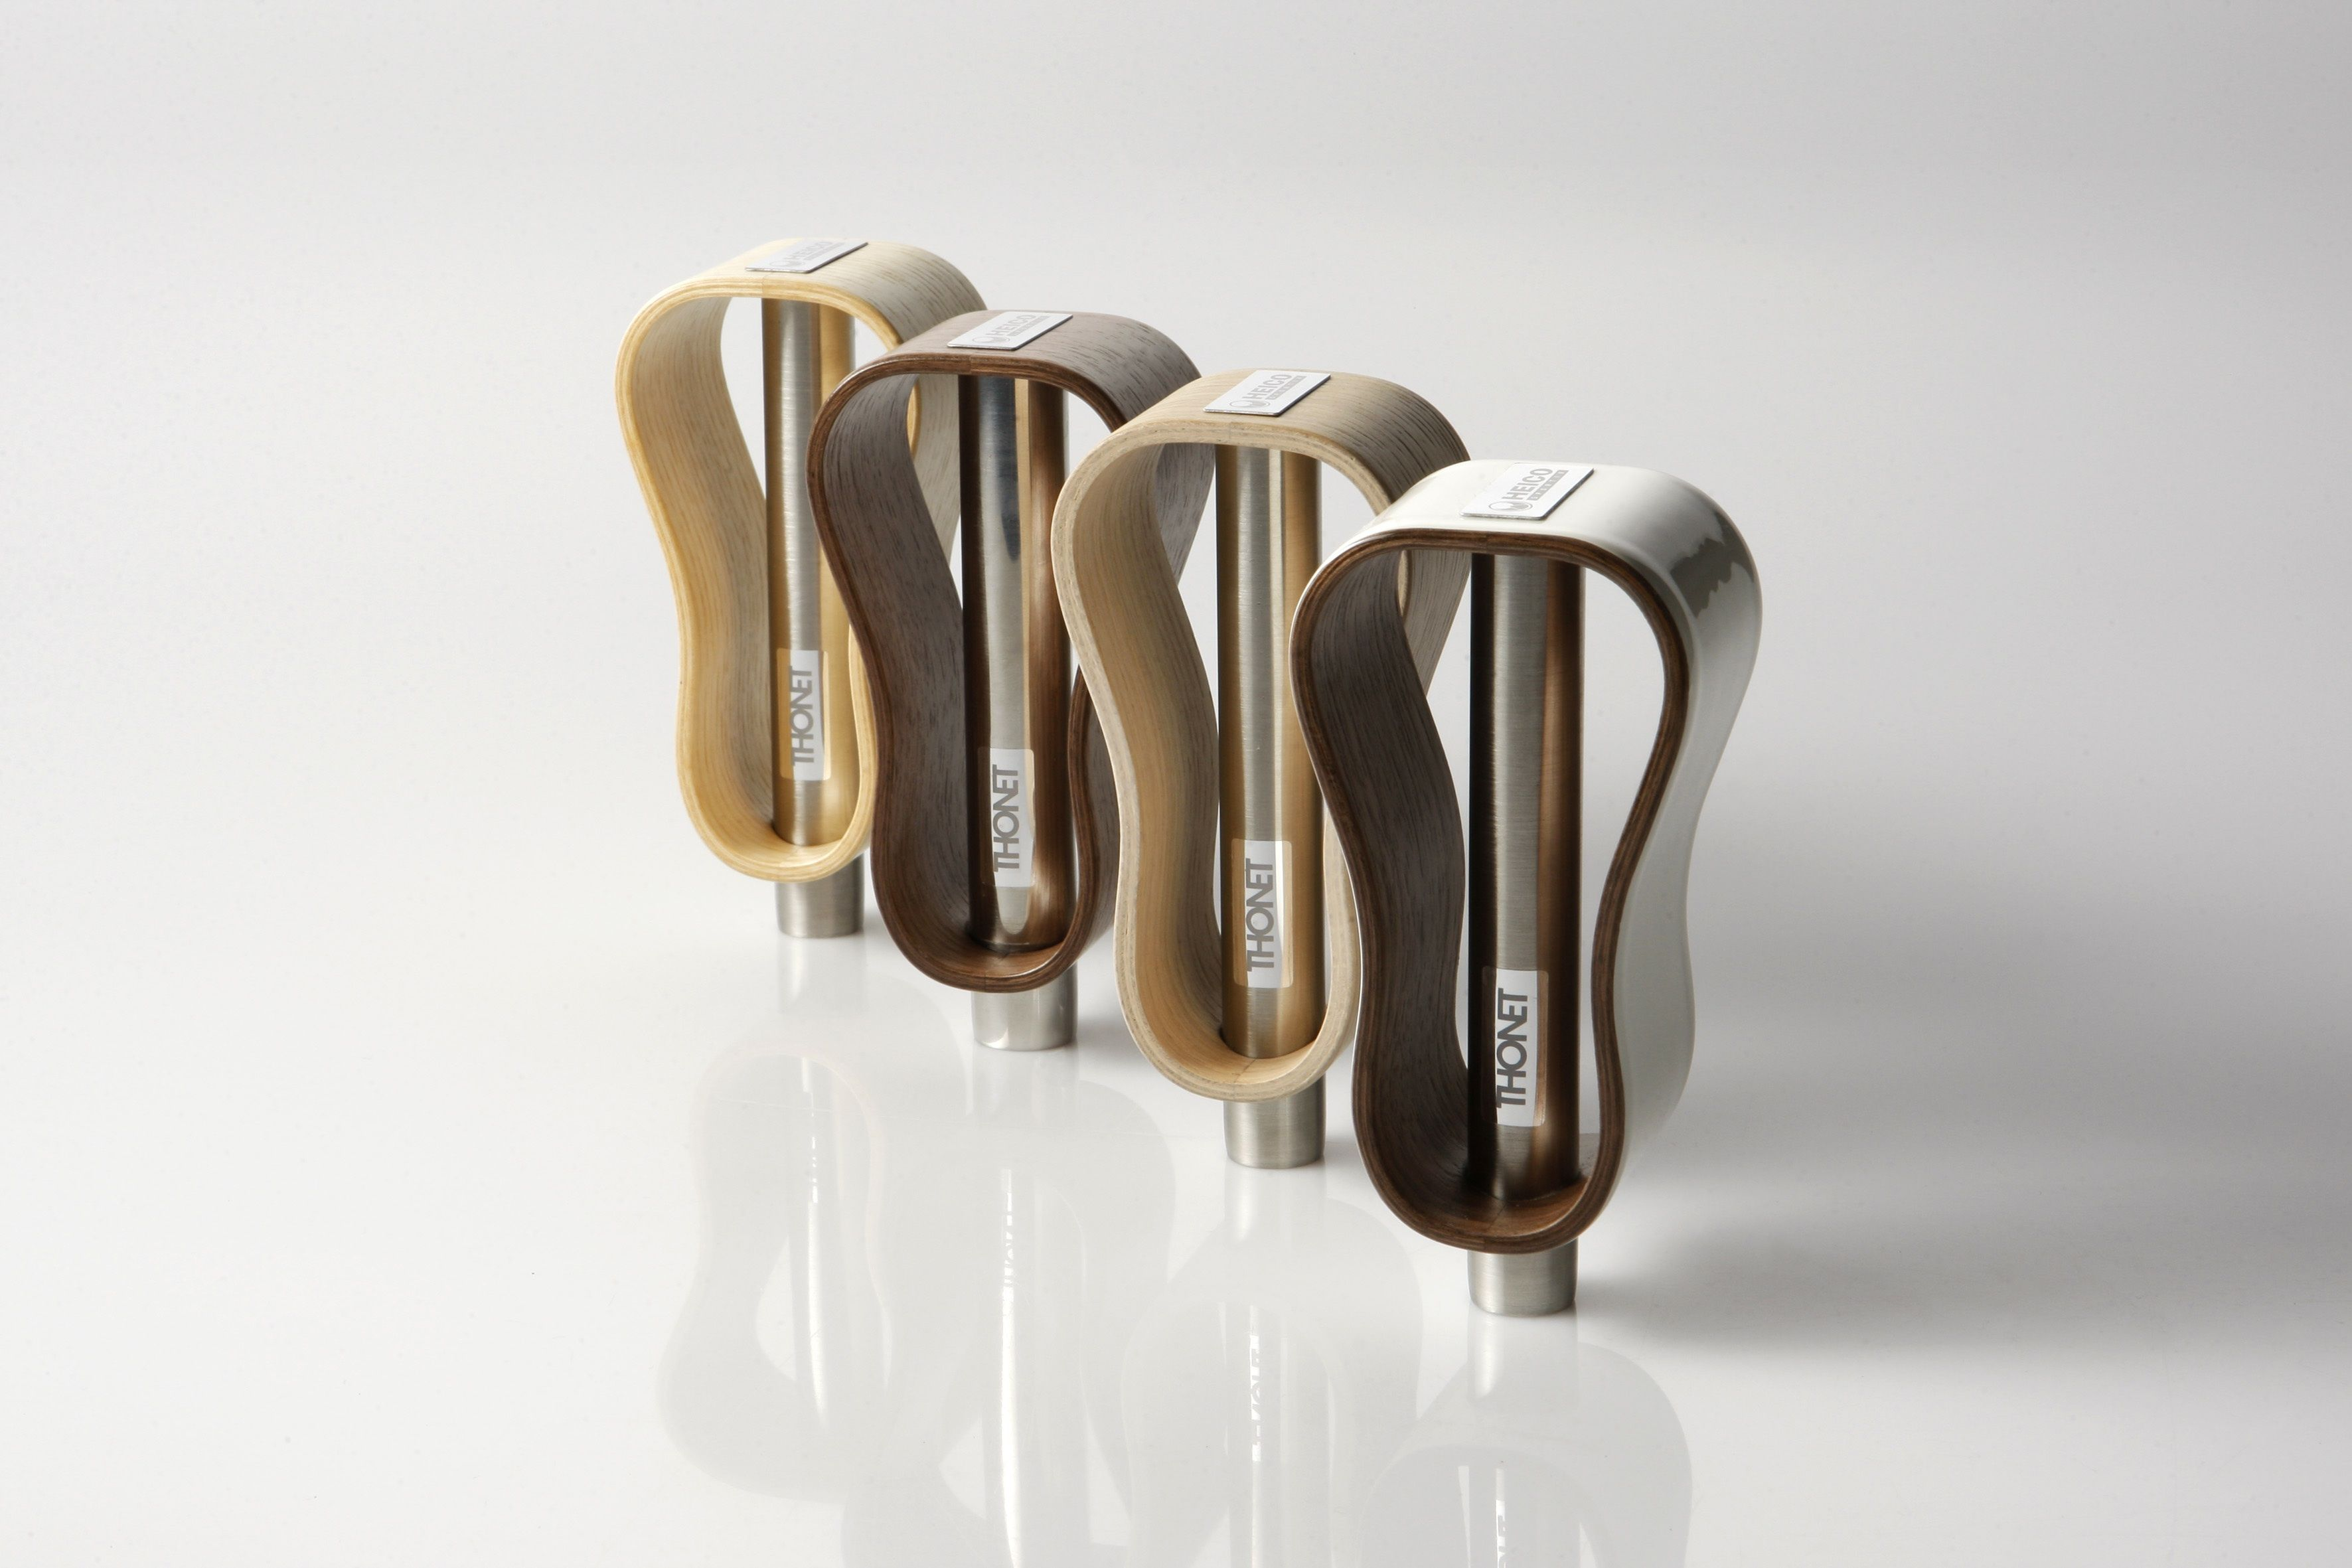 The delightful Volvo gear shift knob by Thonet